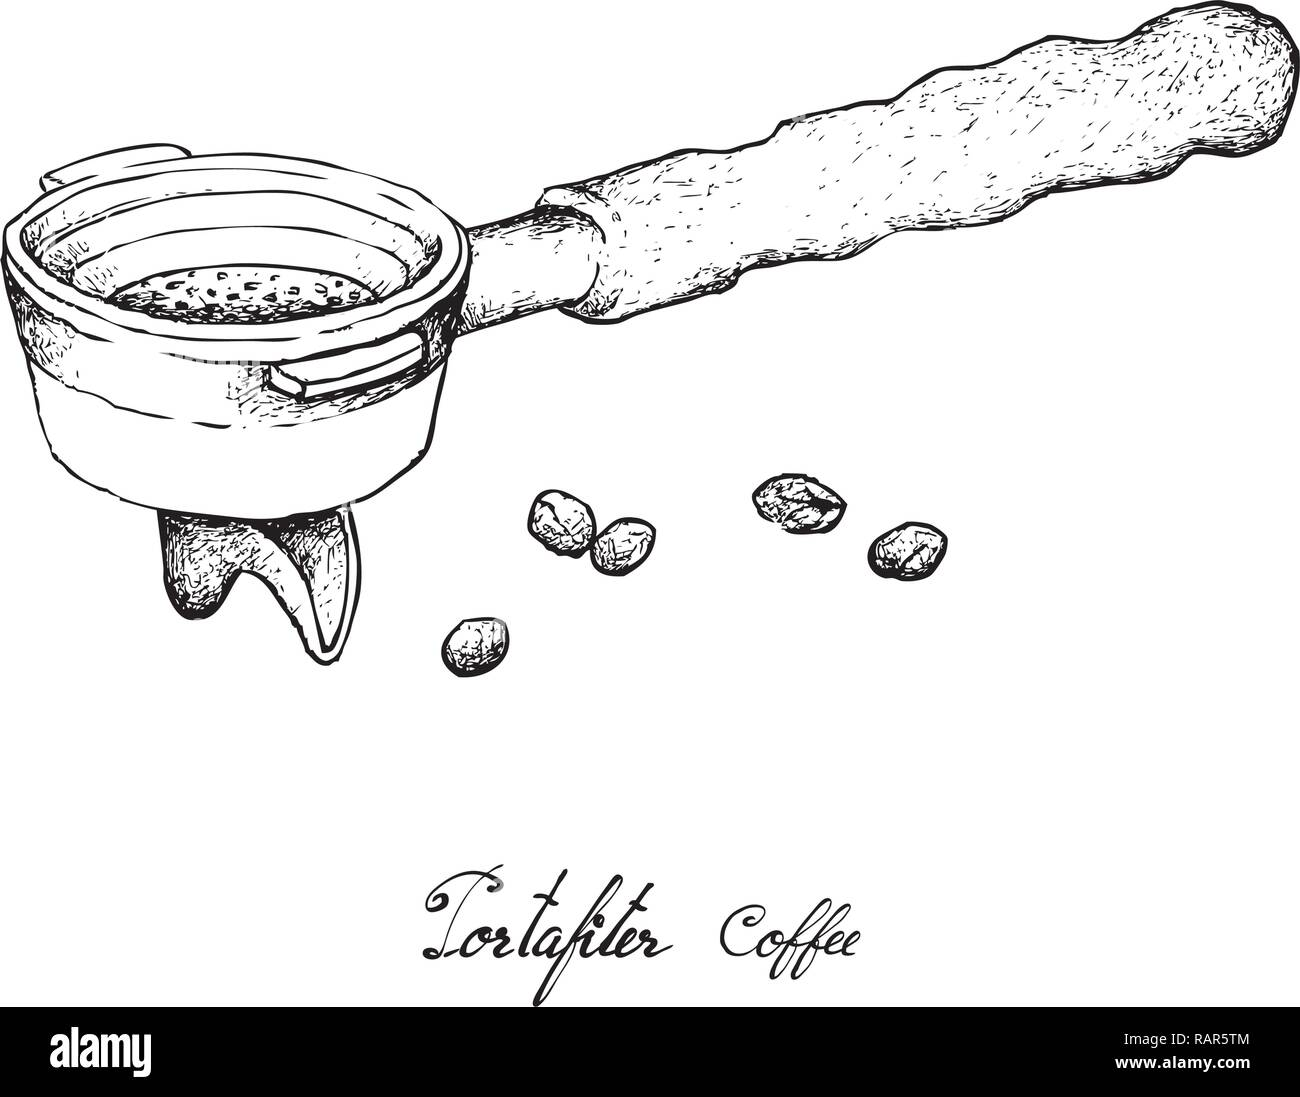 coffee time illustration hand drawn sketch of roasted coffee beans in metal portafilter or filter holder of espresso machine stock vector image art alamy https www alamy com coffee time illustration hand drawn sketch of roasted coffee beans in metal portafilter or filter holder of espresso machine image230390852 html